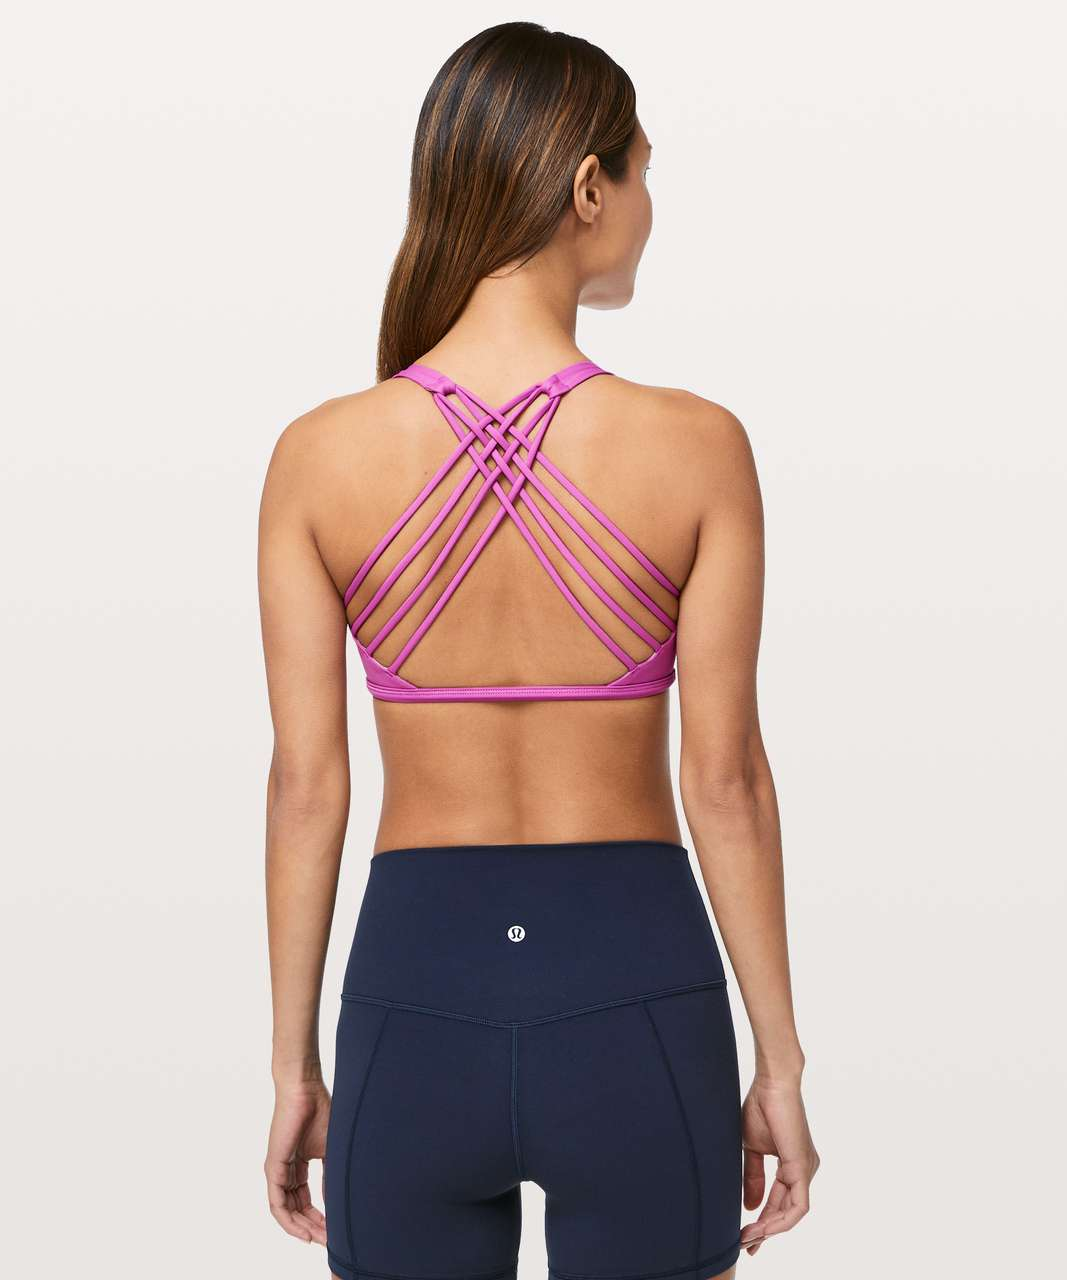 Lululemon Free To Be Bra (Wild) - Hyacinth